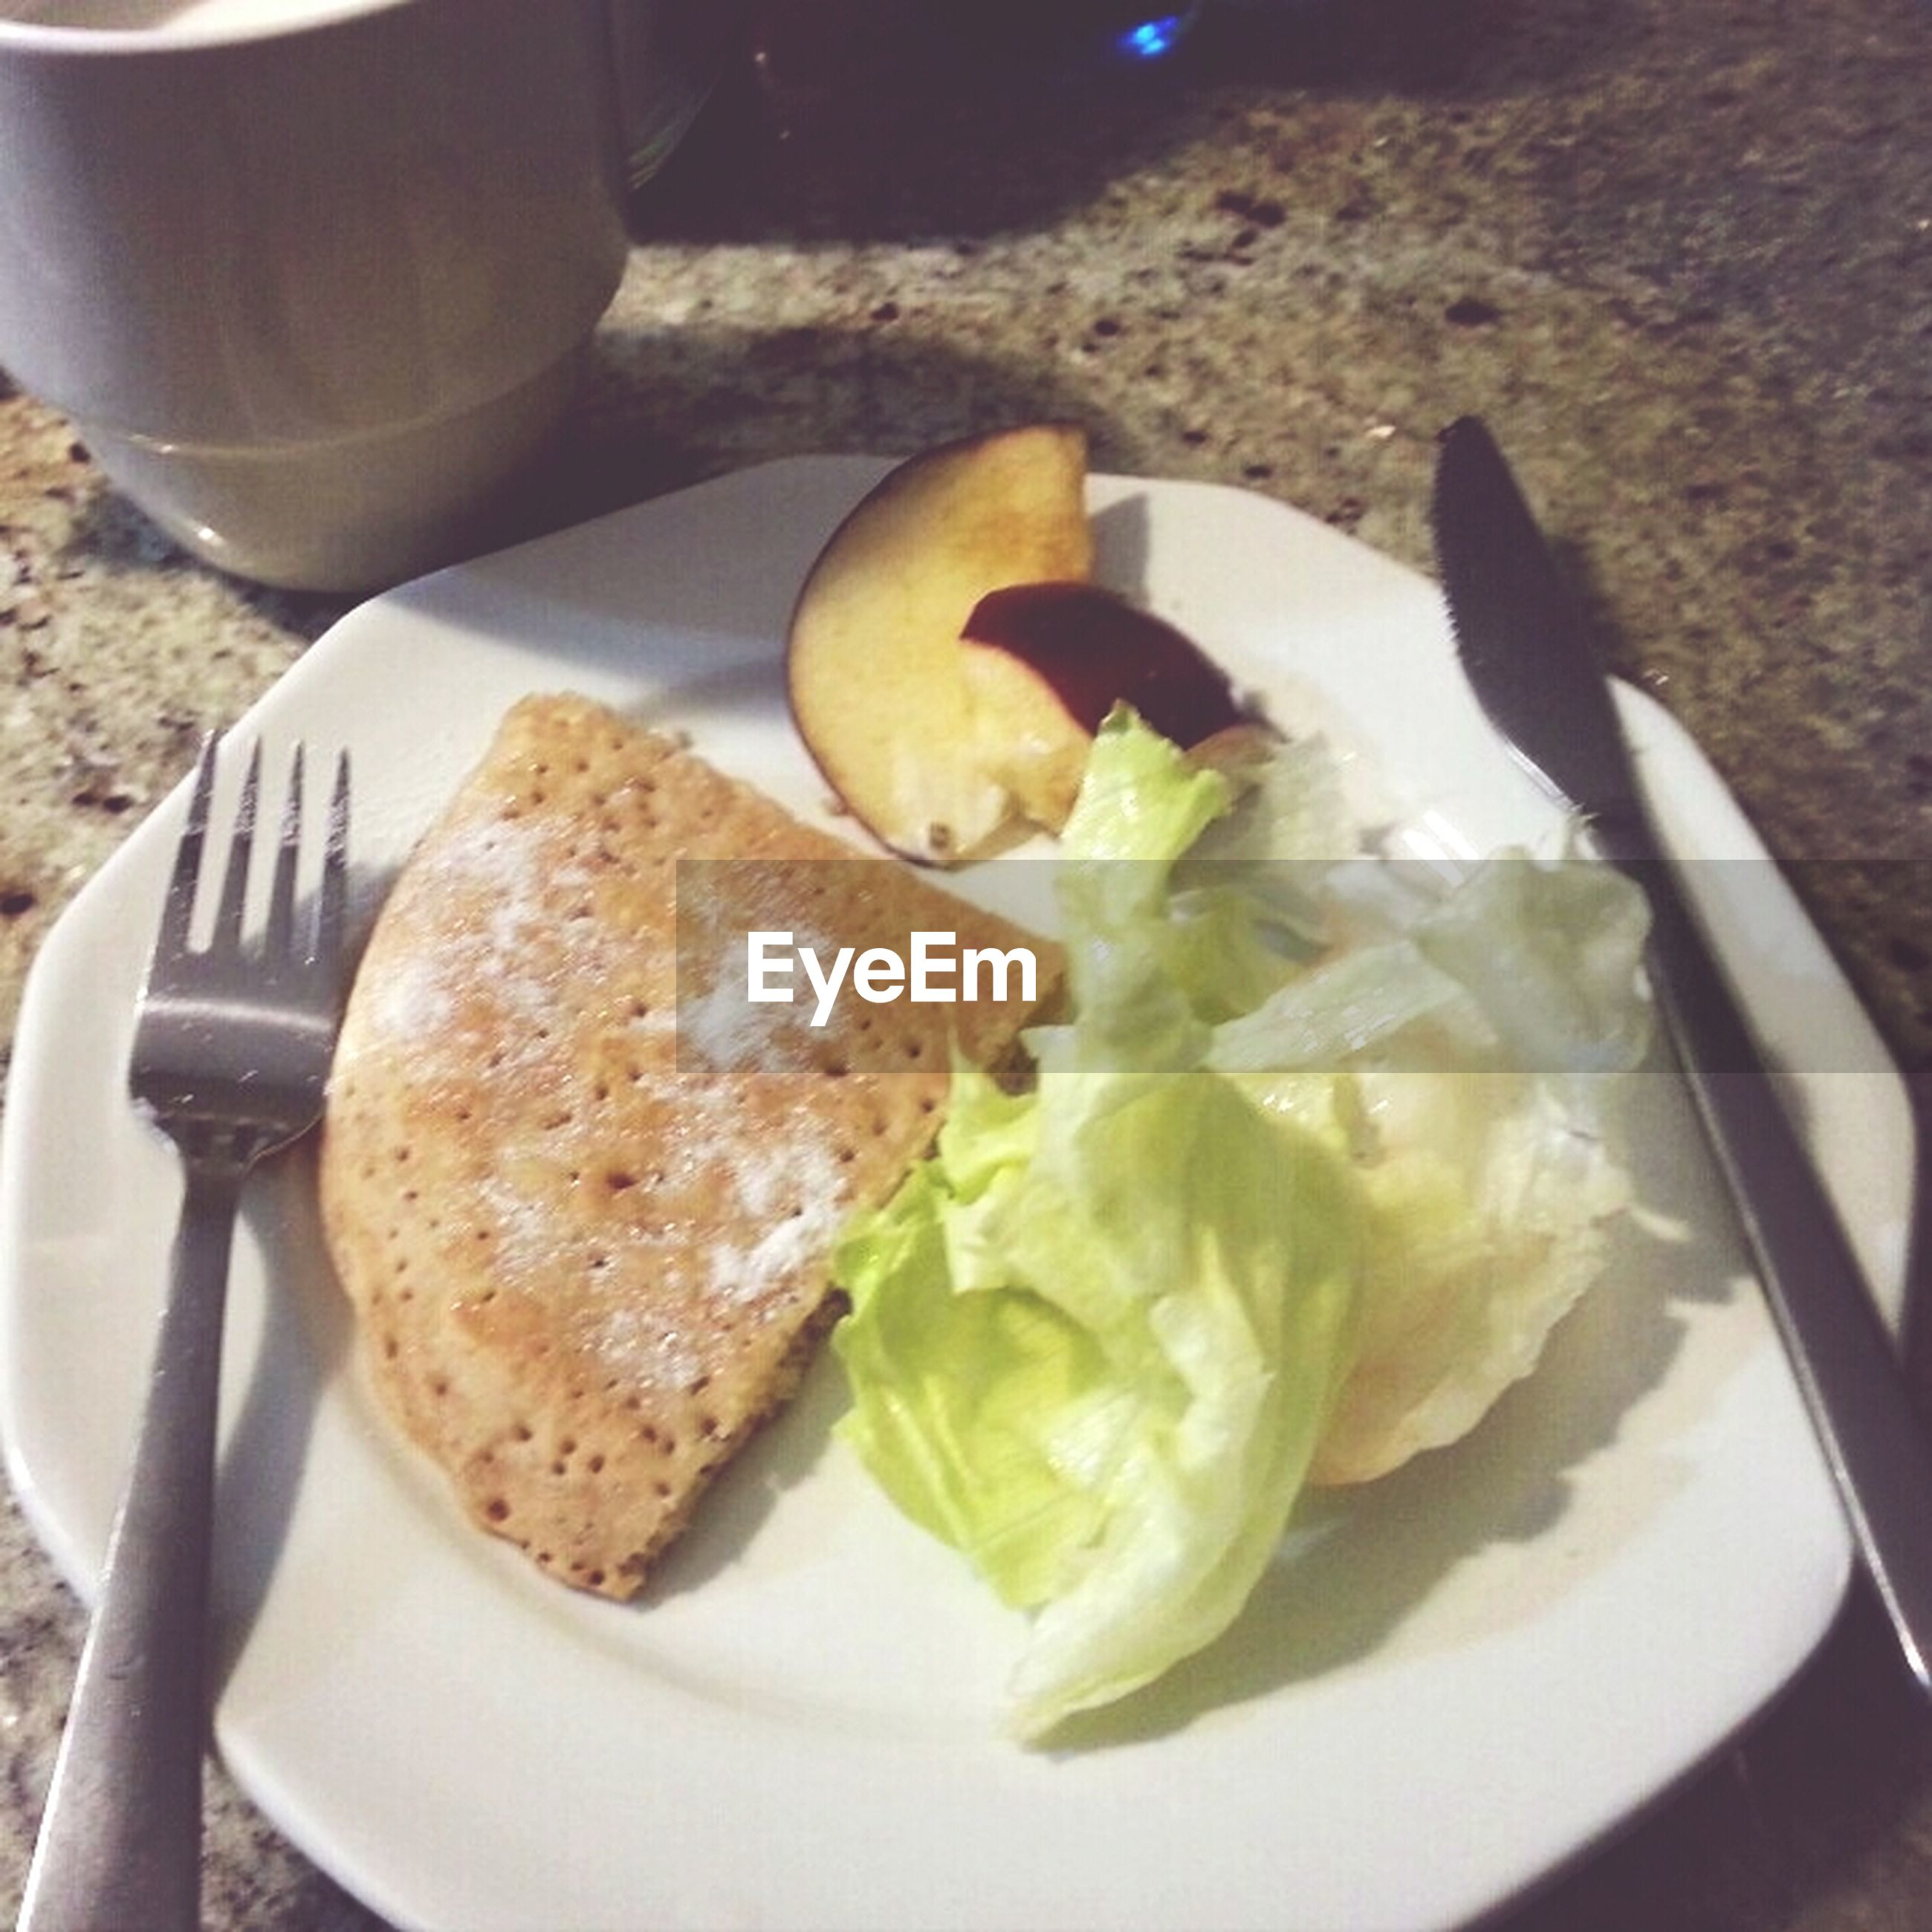 food and drink, food, freshness, ready-to-eat, plate, indoors, still life, healthy eating, serving size, table, close-up, bread, high angle view, indulgence, meal, served, breakfast, bowl, fork, spoon